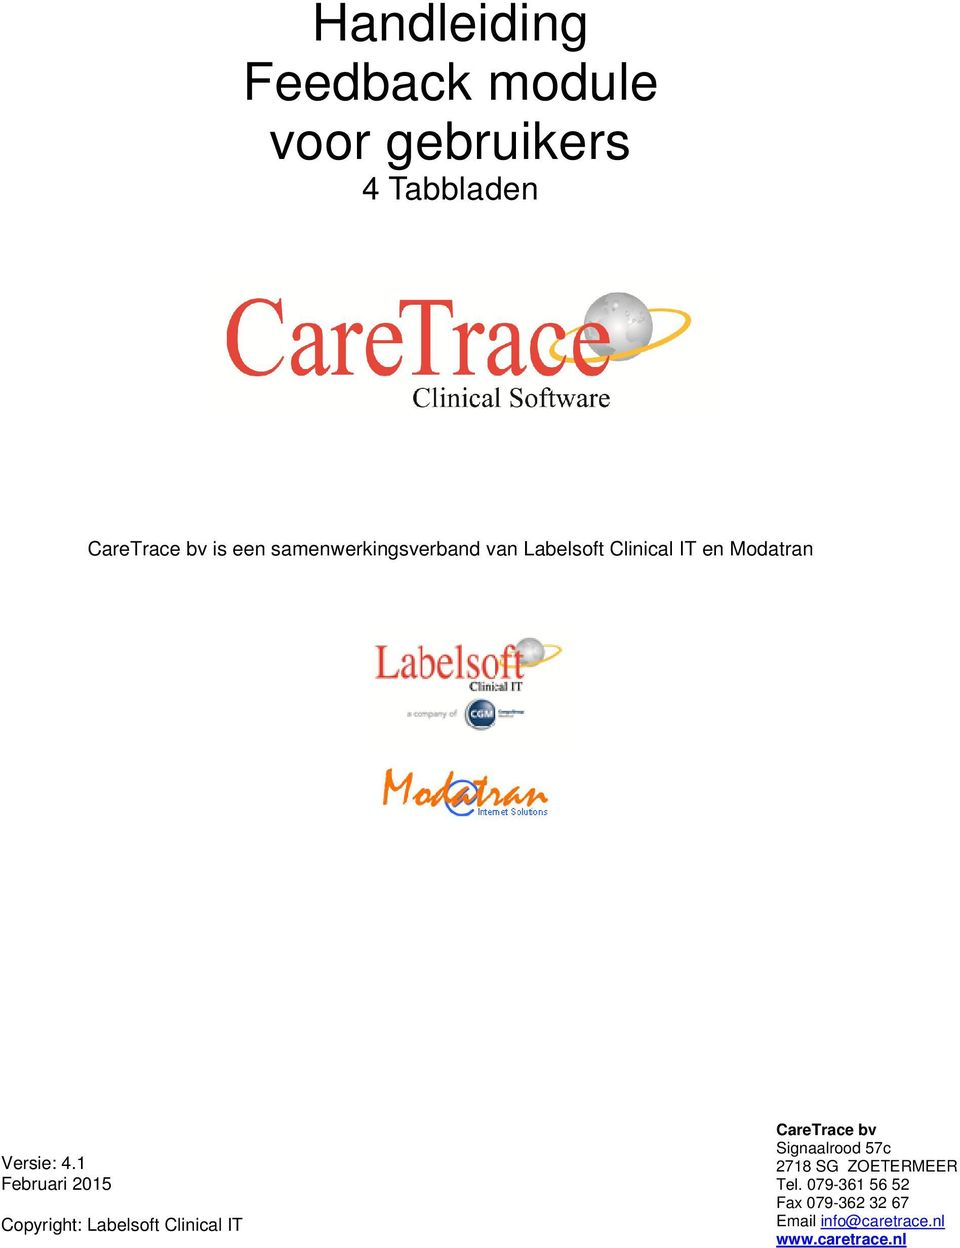 1 Februari 2015 Copyright: Labelsoft Clinical IT CareTrace bv Signaalrood 57c